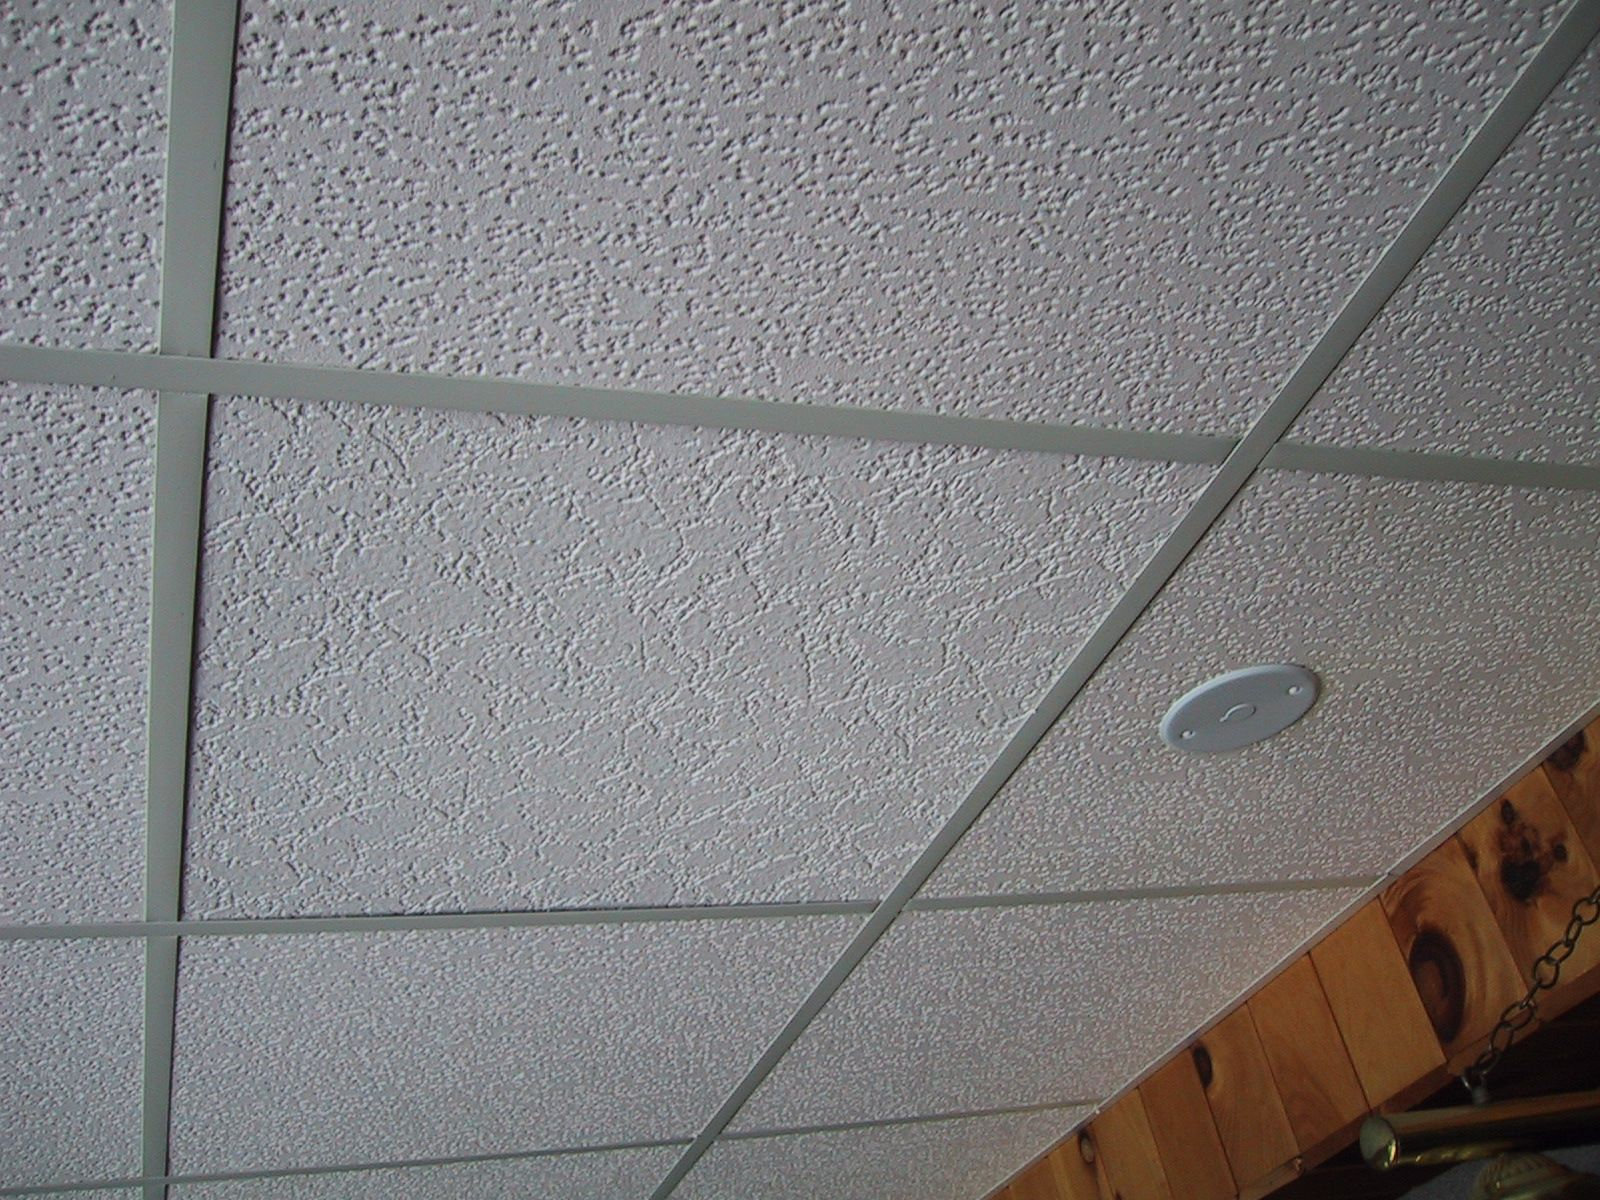 Drop ceiling tiles roof httpbillidgetonpdxdrop drop ceiling tiles roof httpbillidgetonpdxdrop dailygadgetfo Images